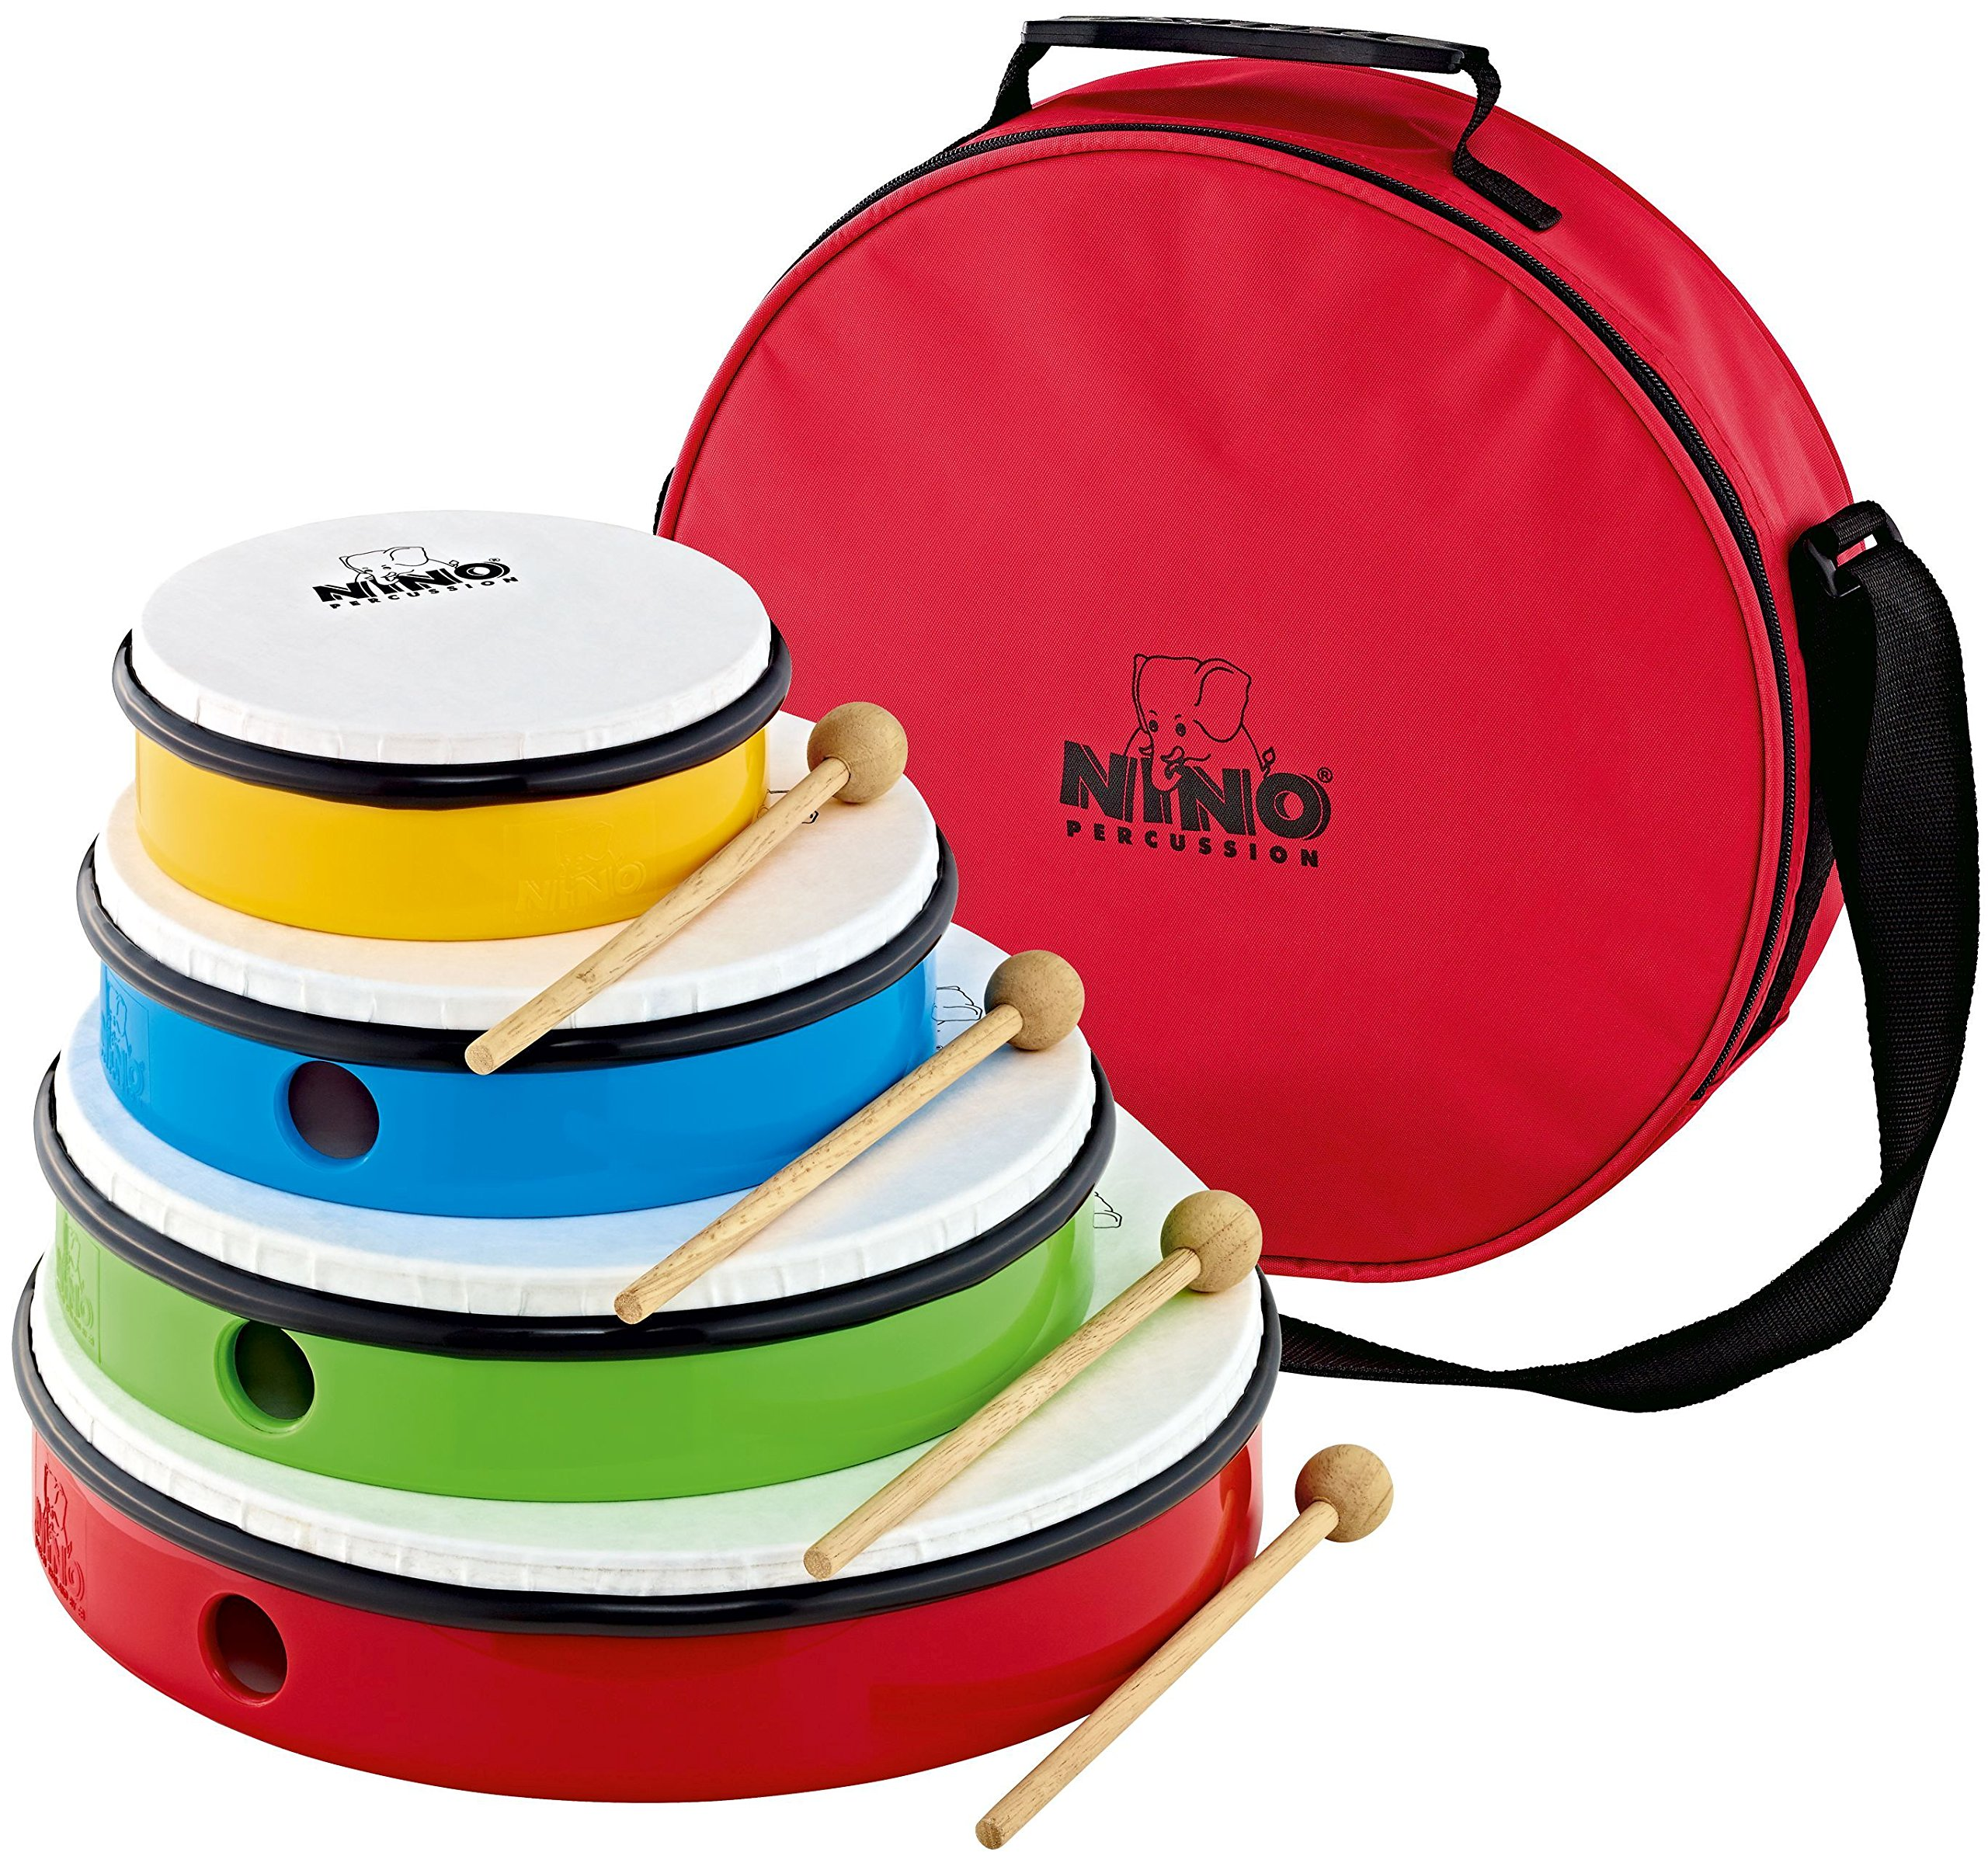 Nino Percussion NINOSET6 Hand Drum Set with 4 Drum Sizes, Includes 4 Mallets & Bag